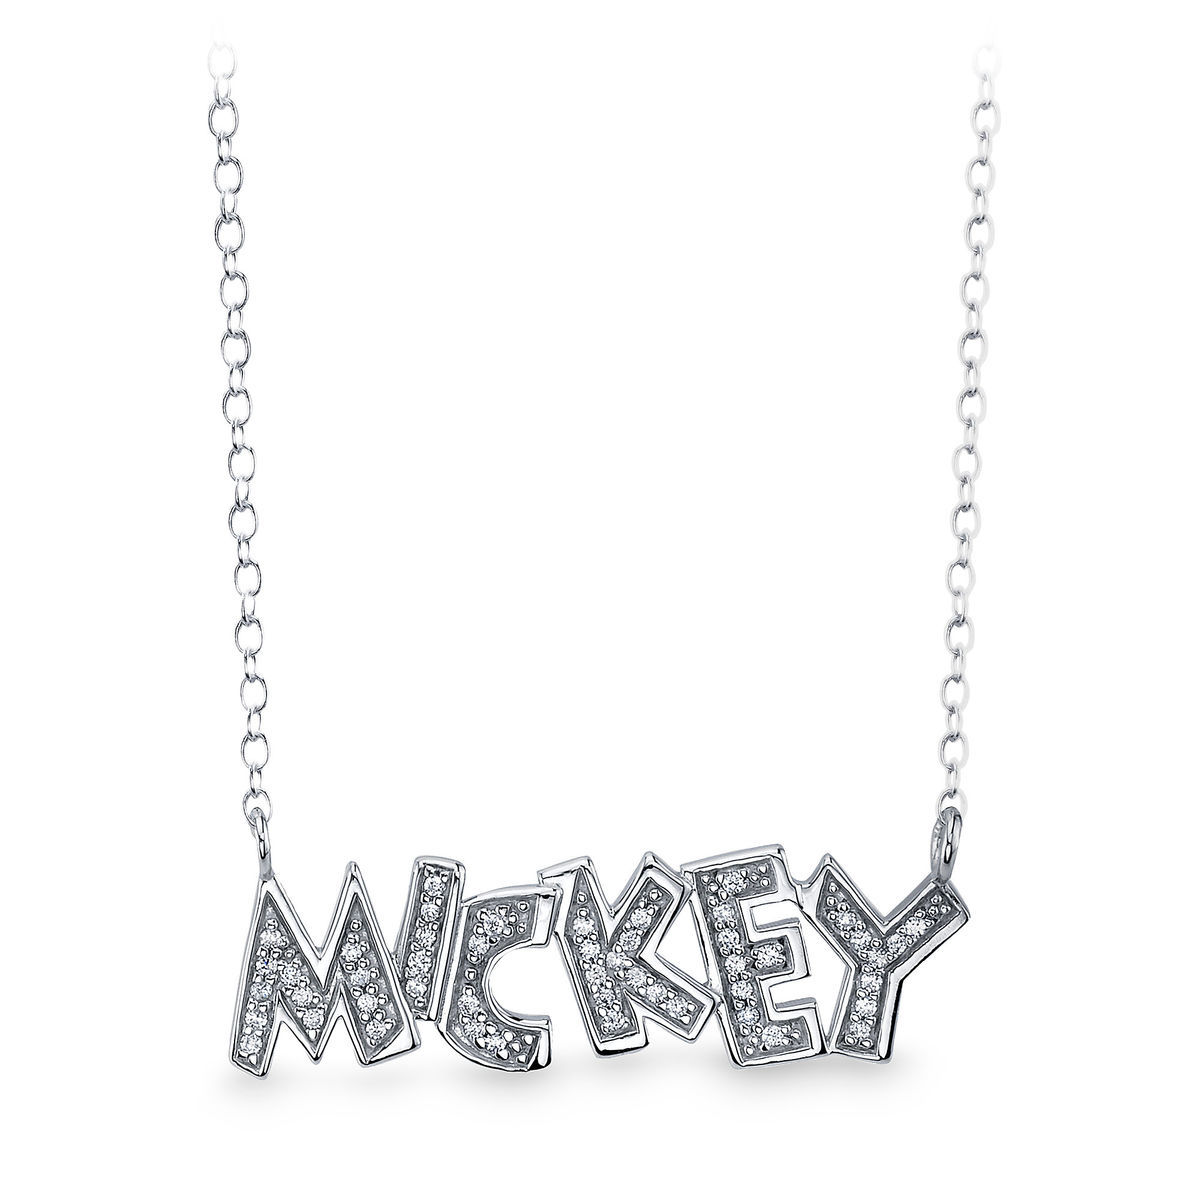 New Mickey Mouse 90th Anniversary Jewelry Out Now